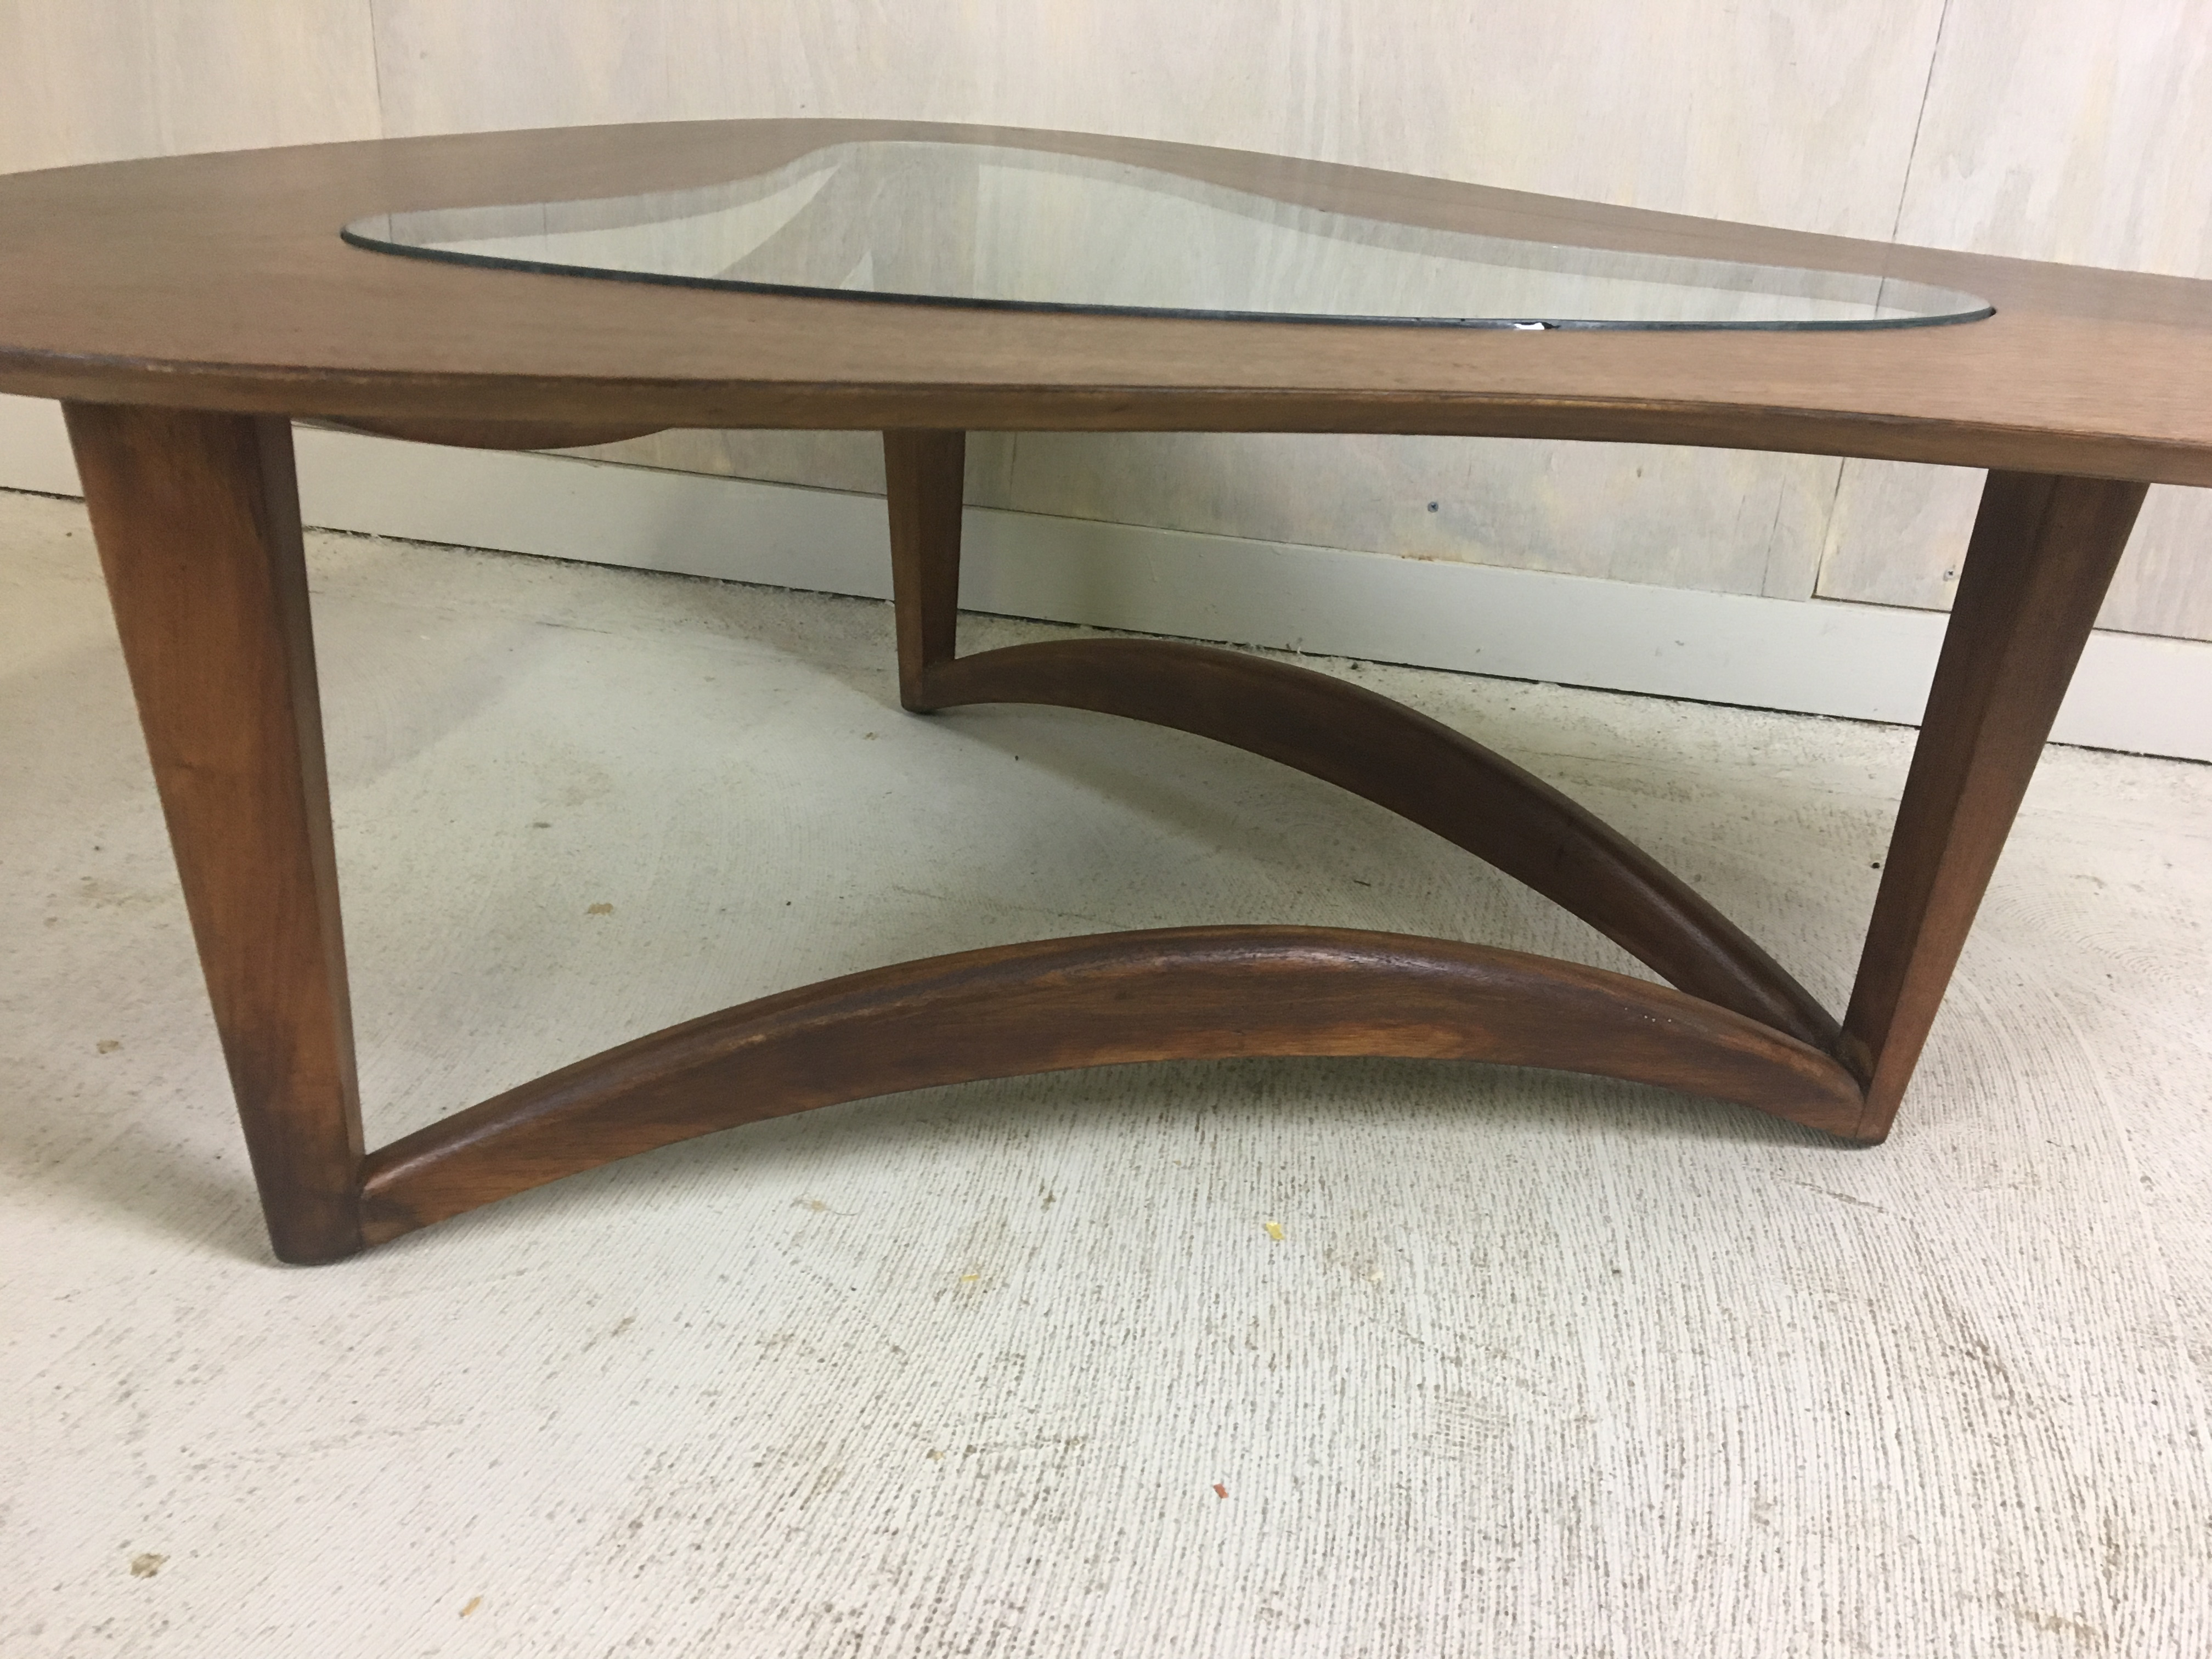 Biomorphic Coffee Table with Glass Insert